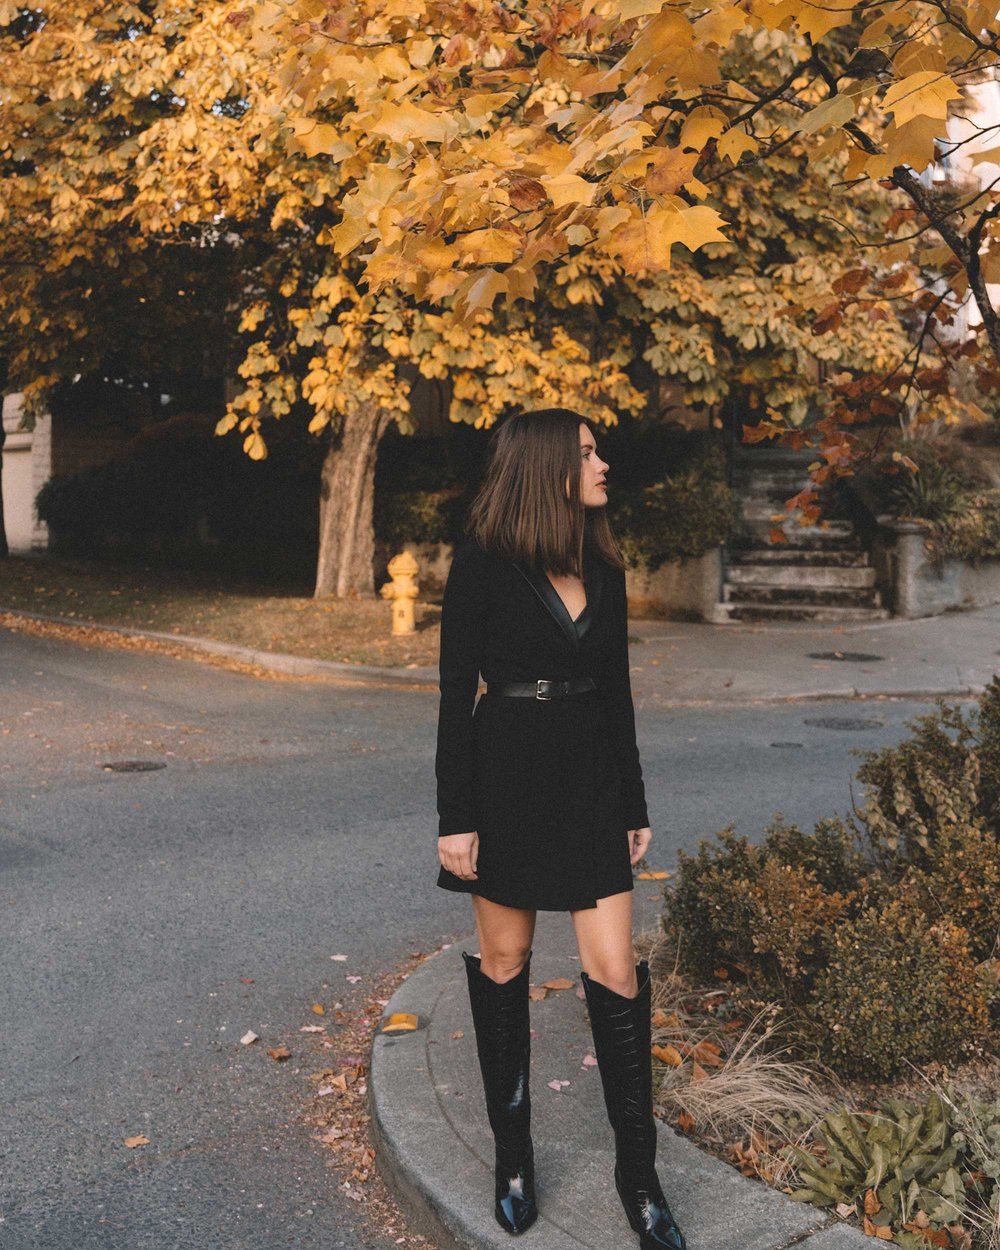 bcbgeneration blazer dress in black, Sigerson Morrison Karida Black Leather Knee High Boot, fall outfit 2.jpg